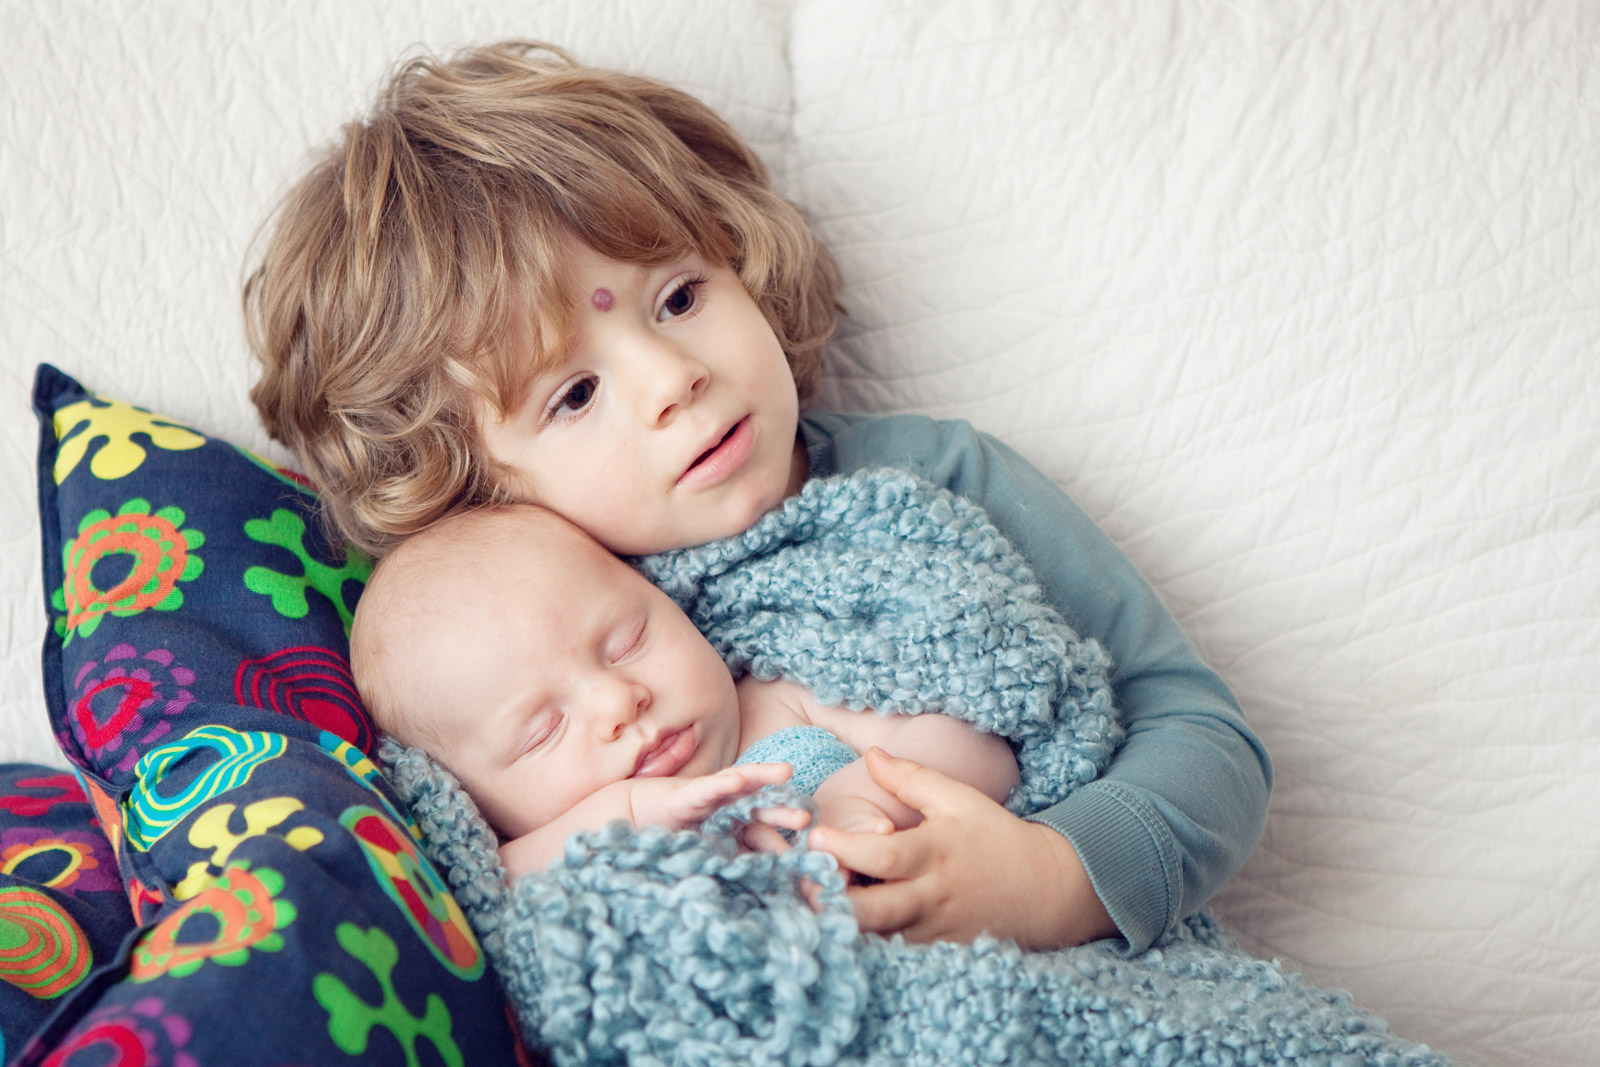 A photo session with a newborn and a brand new big brother or sister comes with its own set of challenges so you need to be well prepared. Here are some tips that really help me make these sessions enjoyable for everyone!